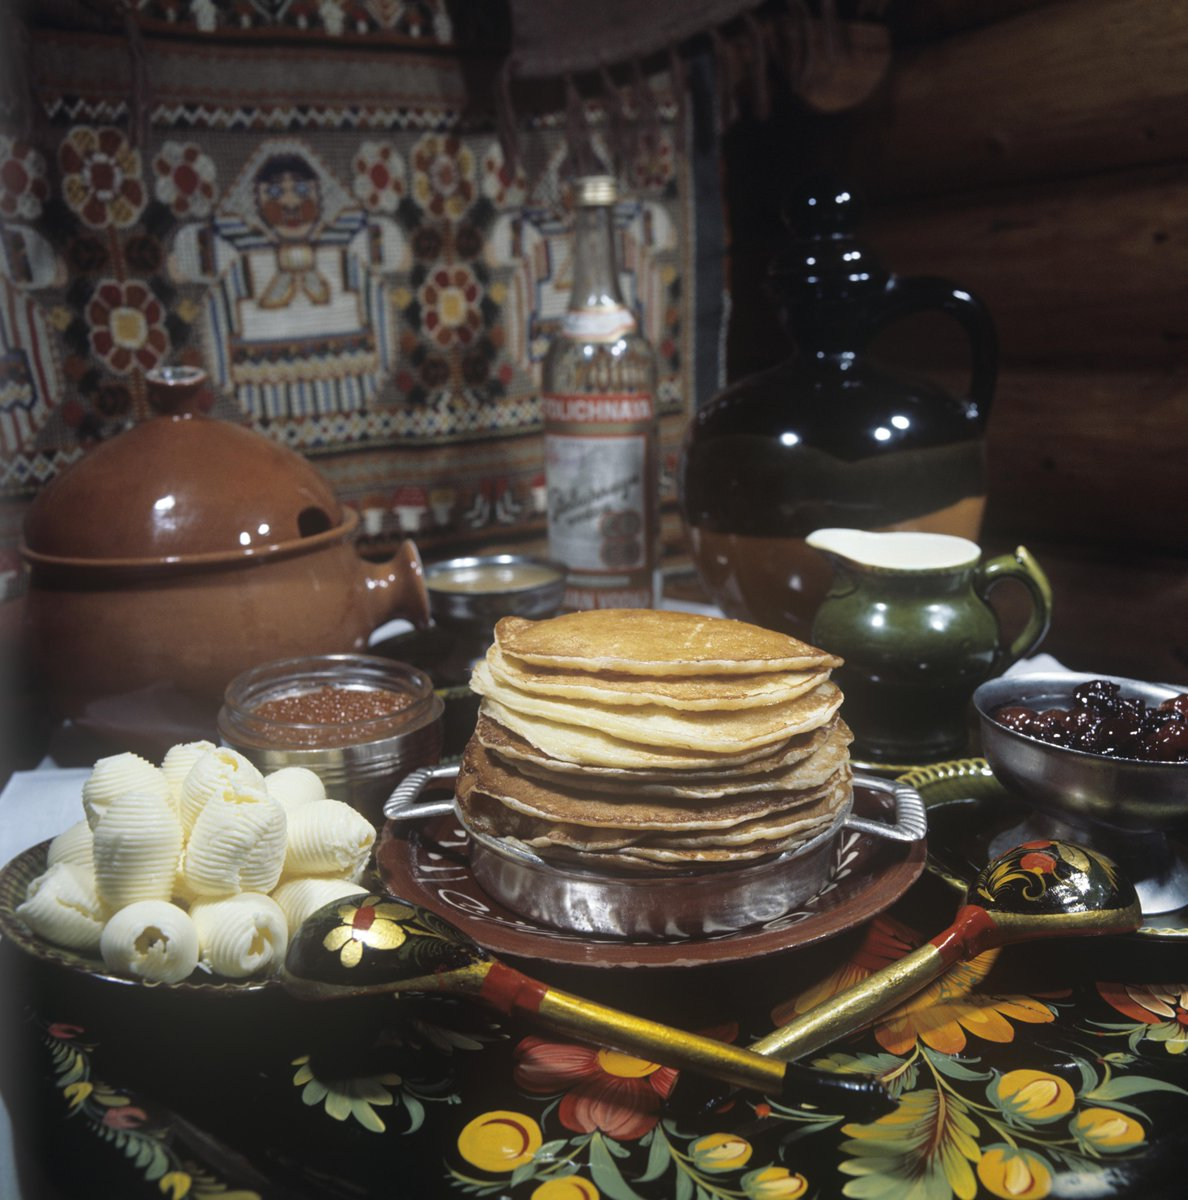 Visiting Russia soon? Click to read about delicacies every #tourist should sample. #cuisine http://t.co/jcmtUcPSME http://t.co/bSI8irlaeB